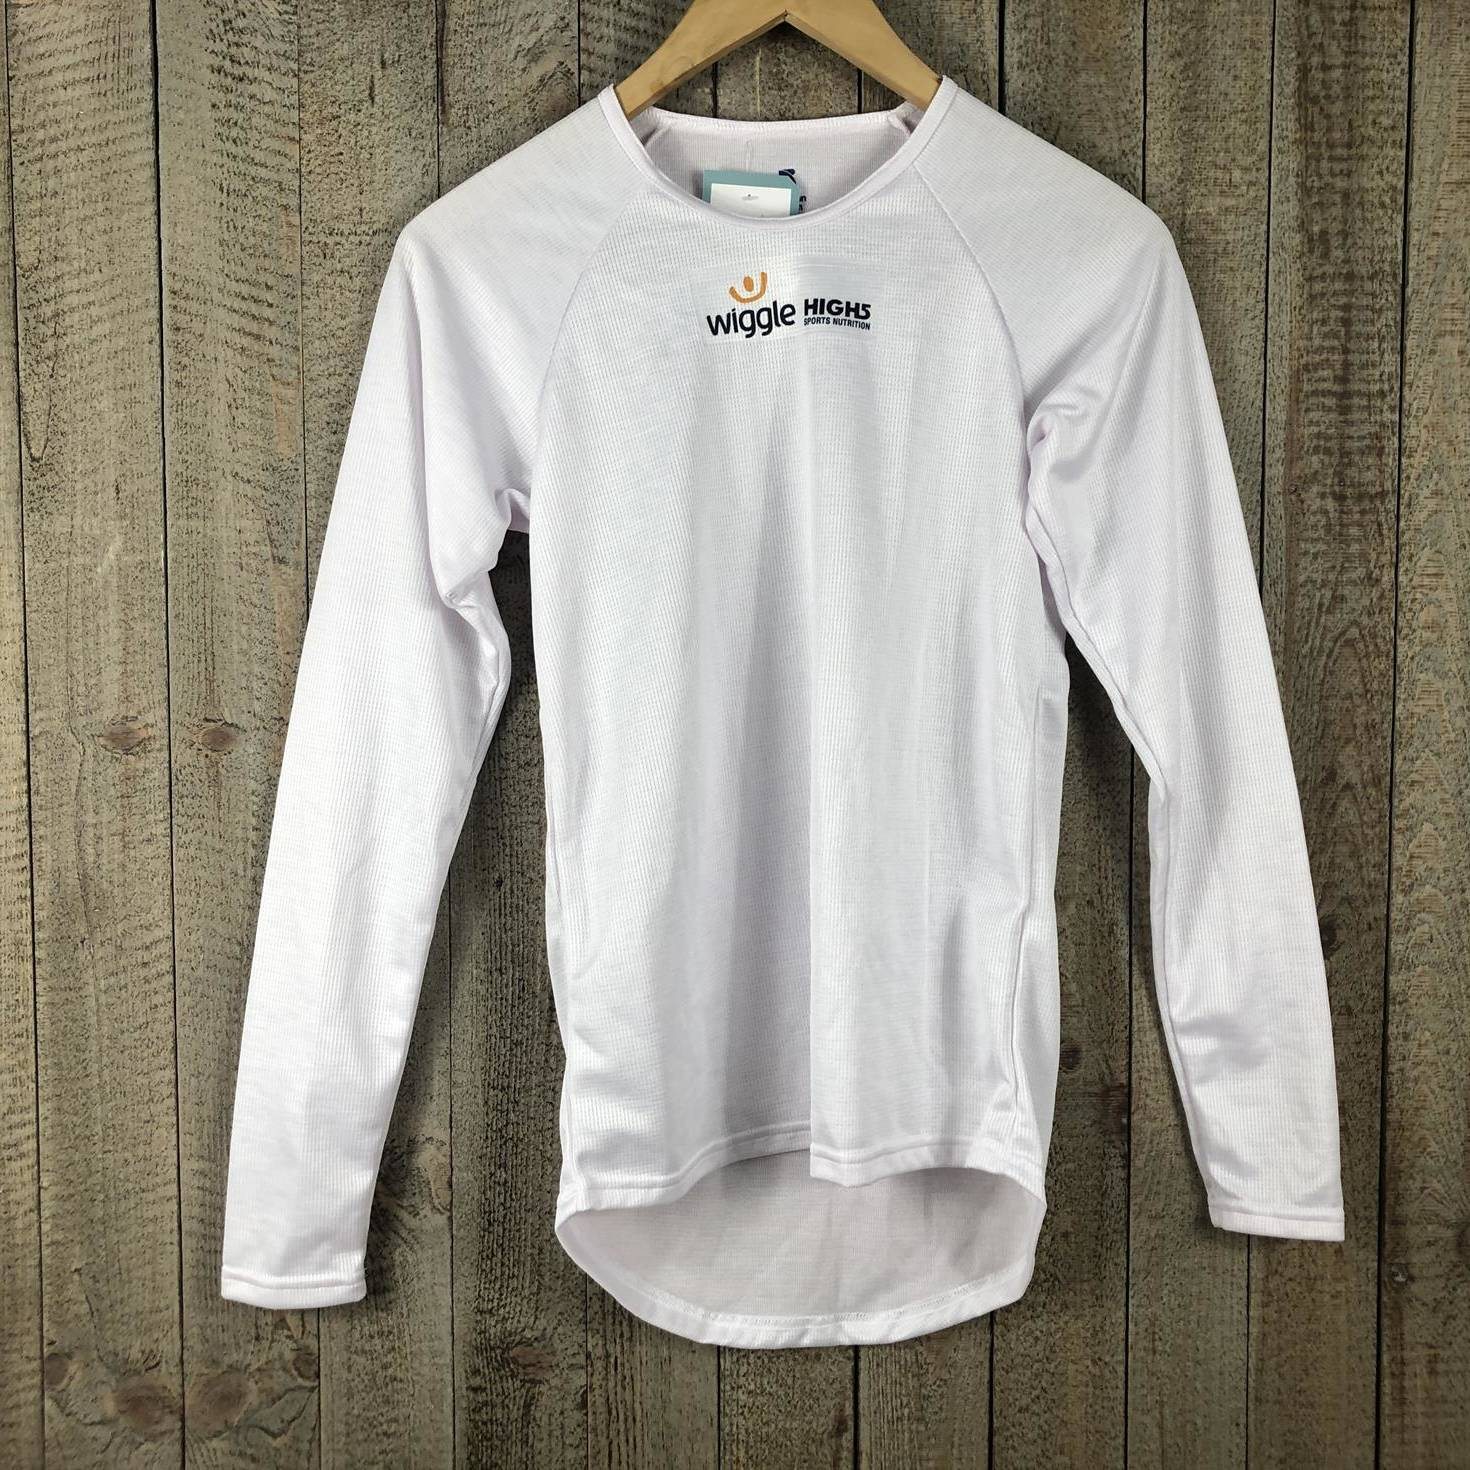 Midweight Base Layer - Wiggle High5 00002278 (1)